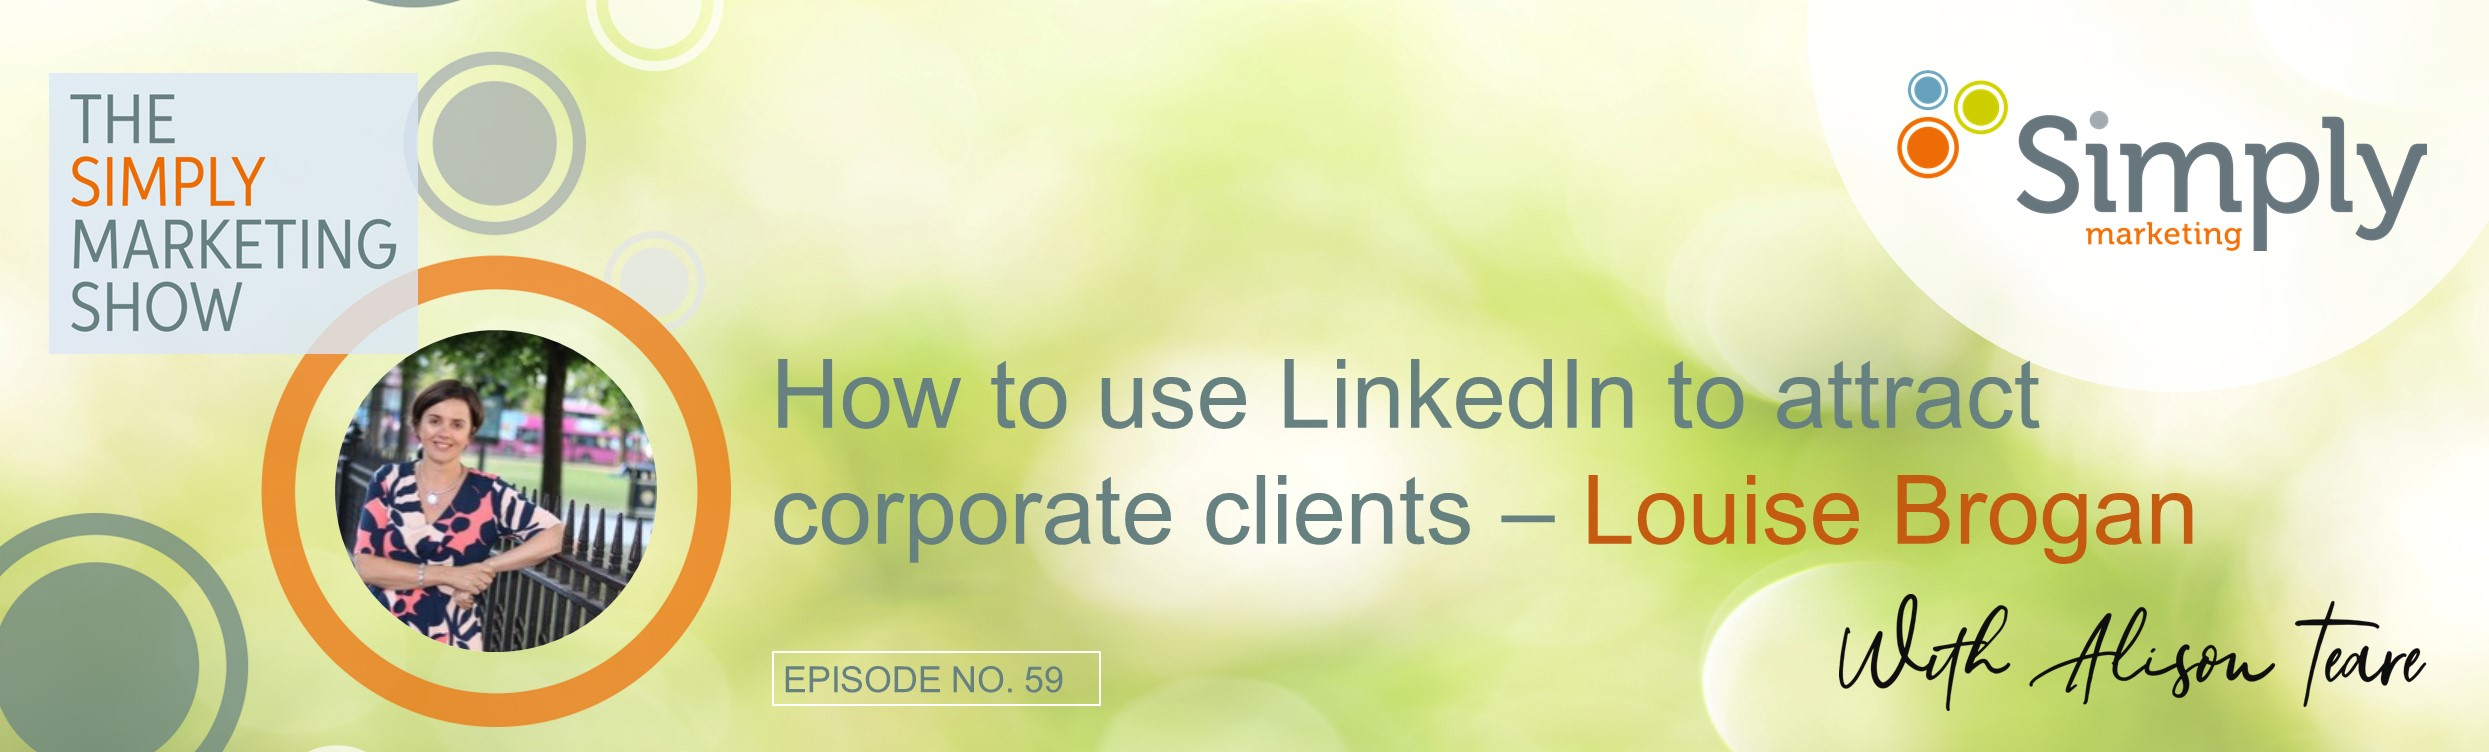 use LinkedIn to attract corporate clients